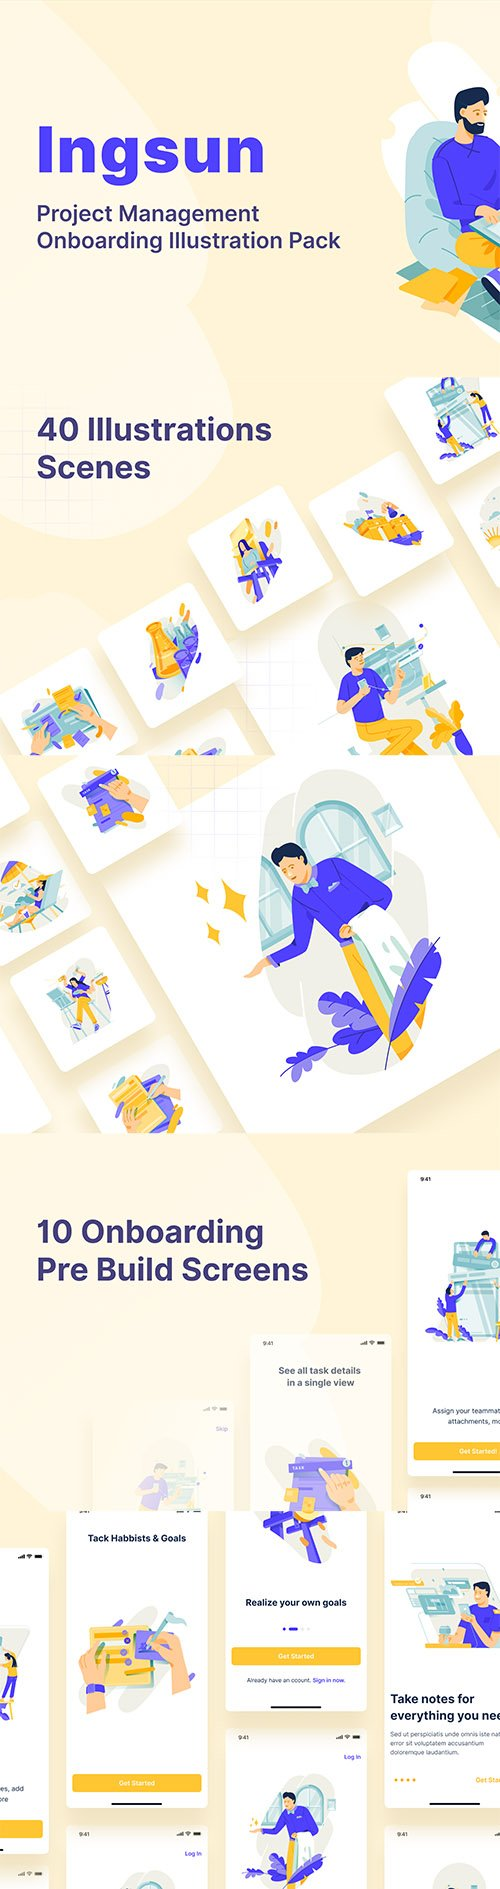 Ingsun : Project Management Onboarding Illustrations Pack